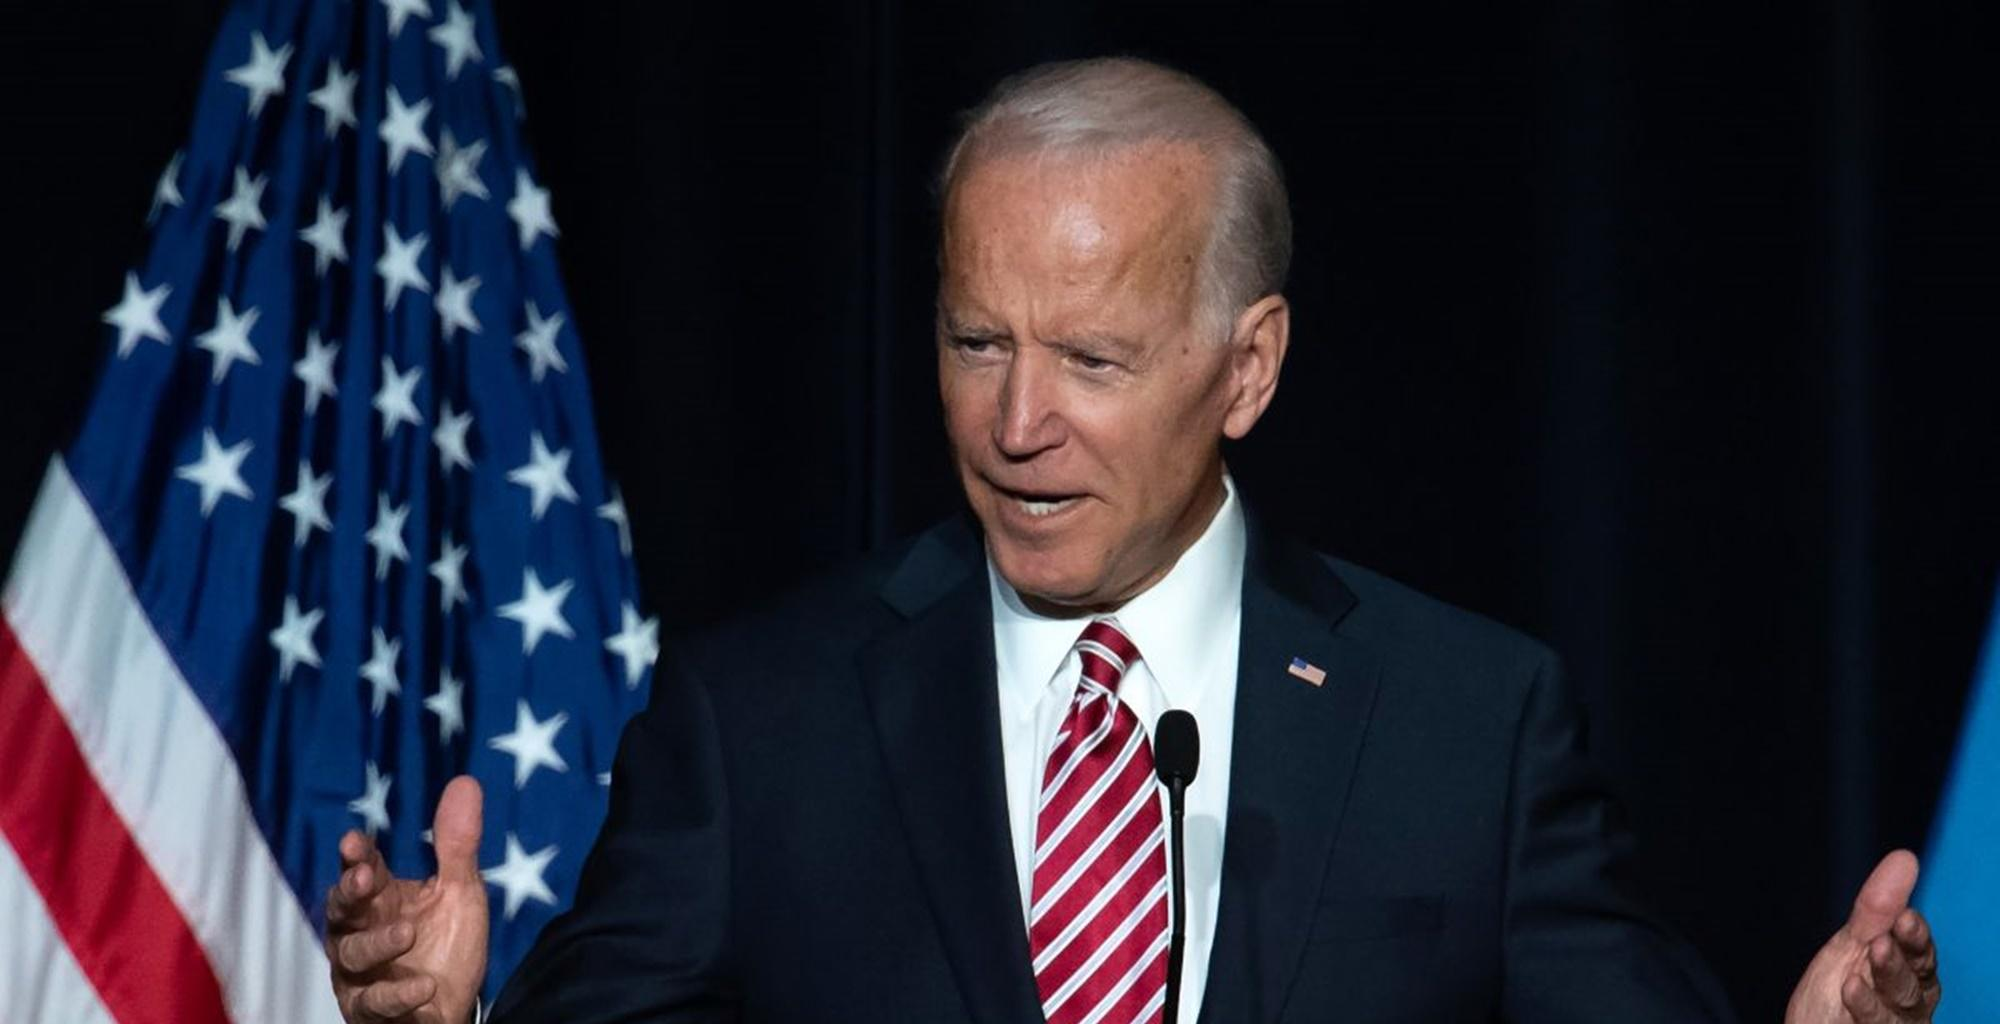 Attacks On Joe Biden Over Inappropriate Behavior Continue, But He Likely To Run